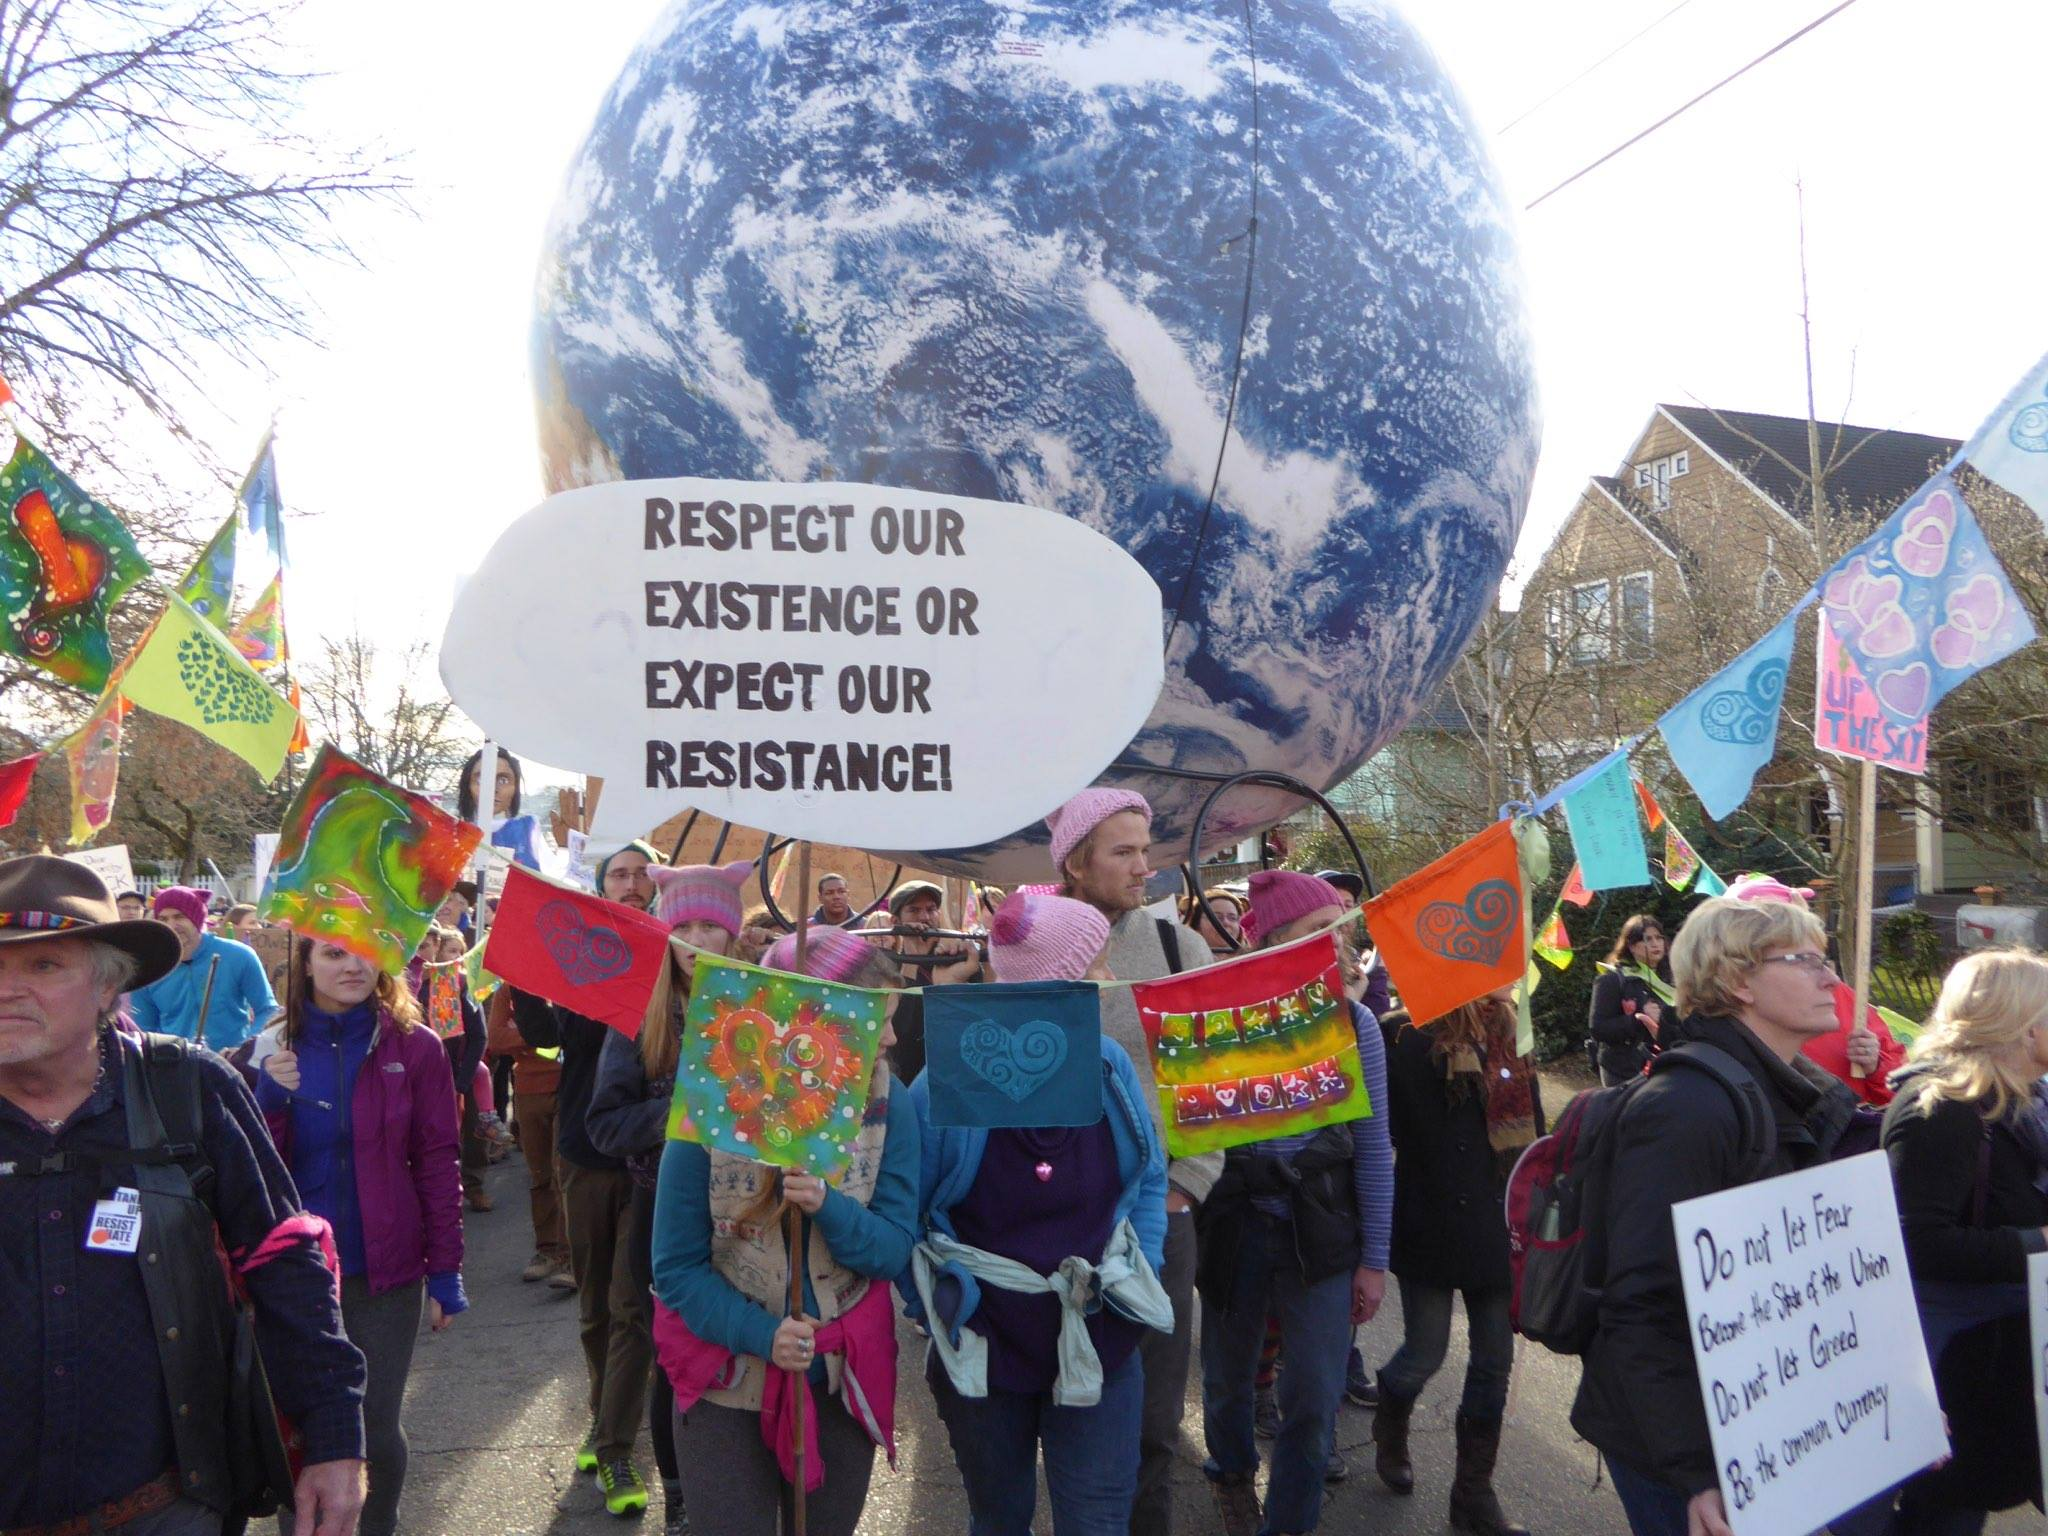 Respect_our_existence_speech_bubble_sign_earth_globe_womens_march_by_les_berenson_16179590_10154360327377921_2389735553953337670_o.jpg